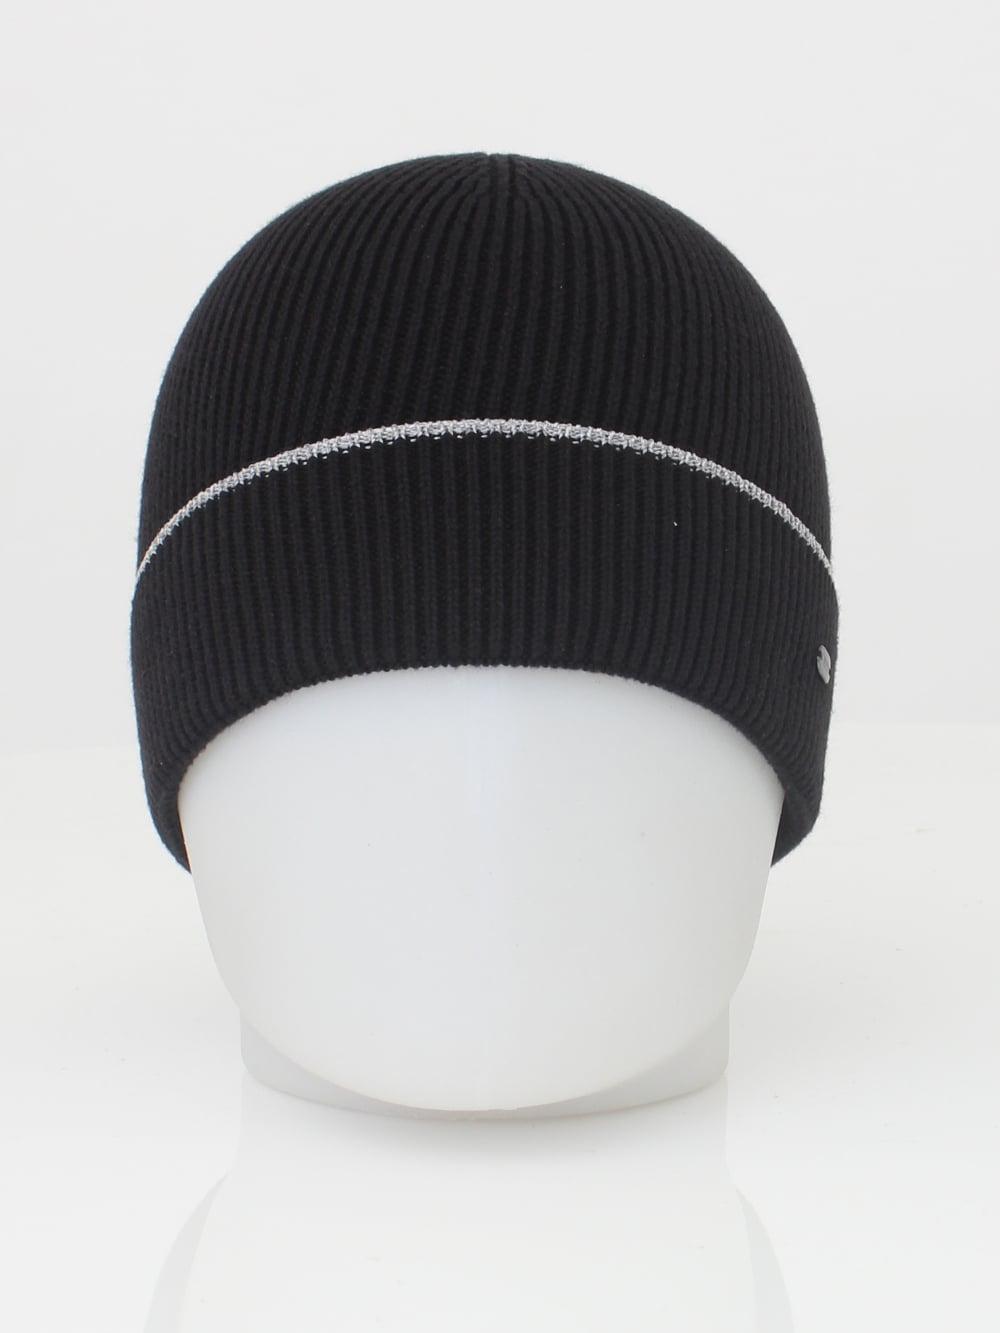 HUGO BOSS - BOSS Green Beanie Reflective Hat in Navy - Northern Threads 60664814ae6